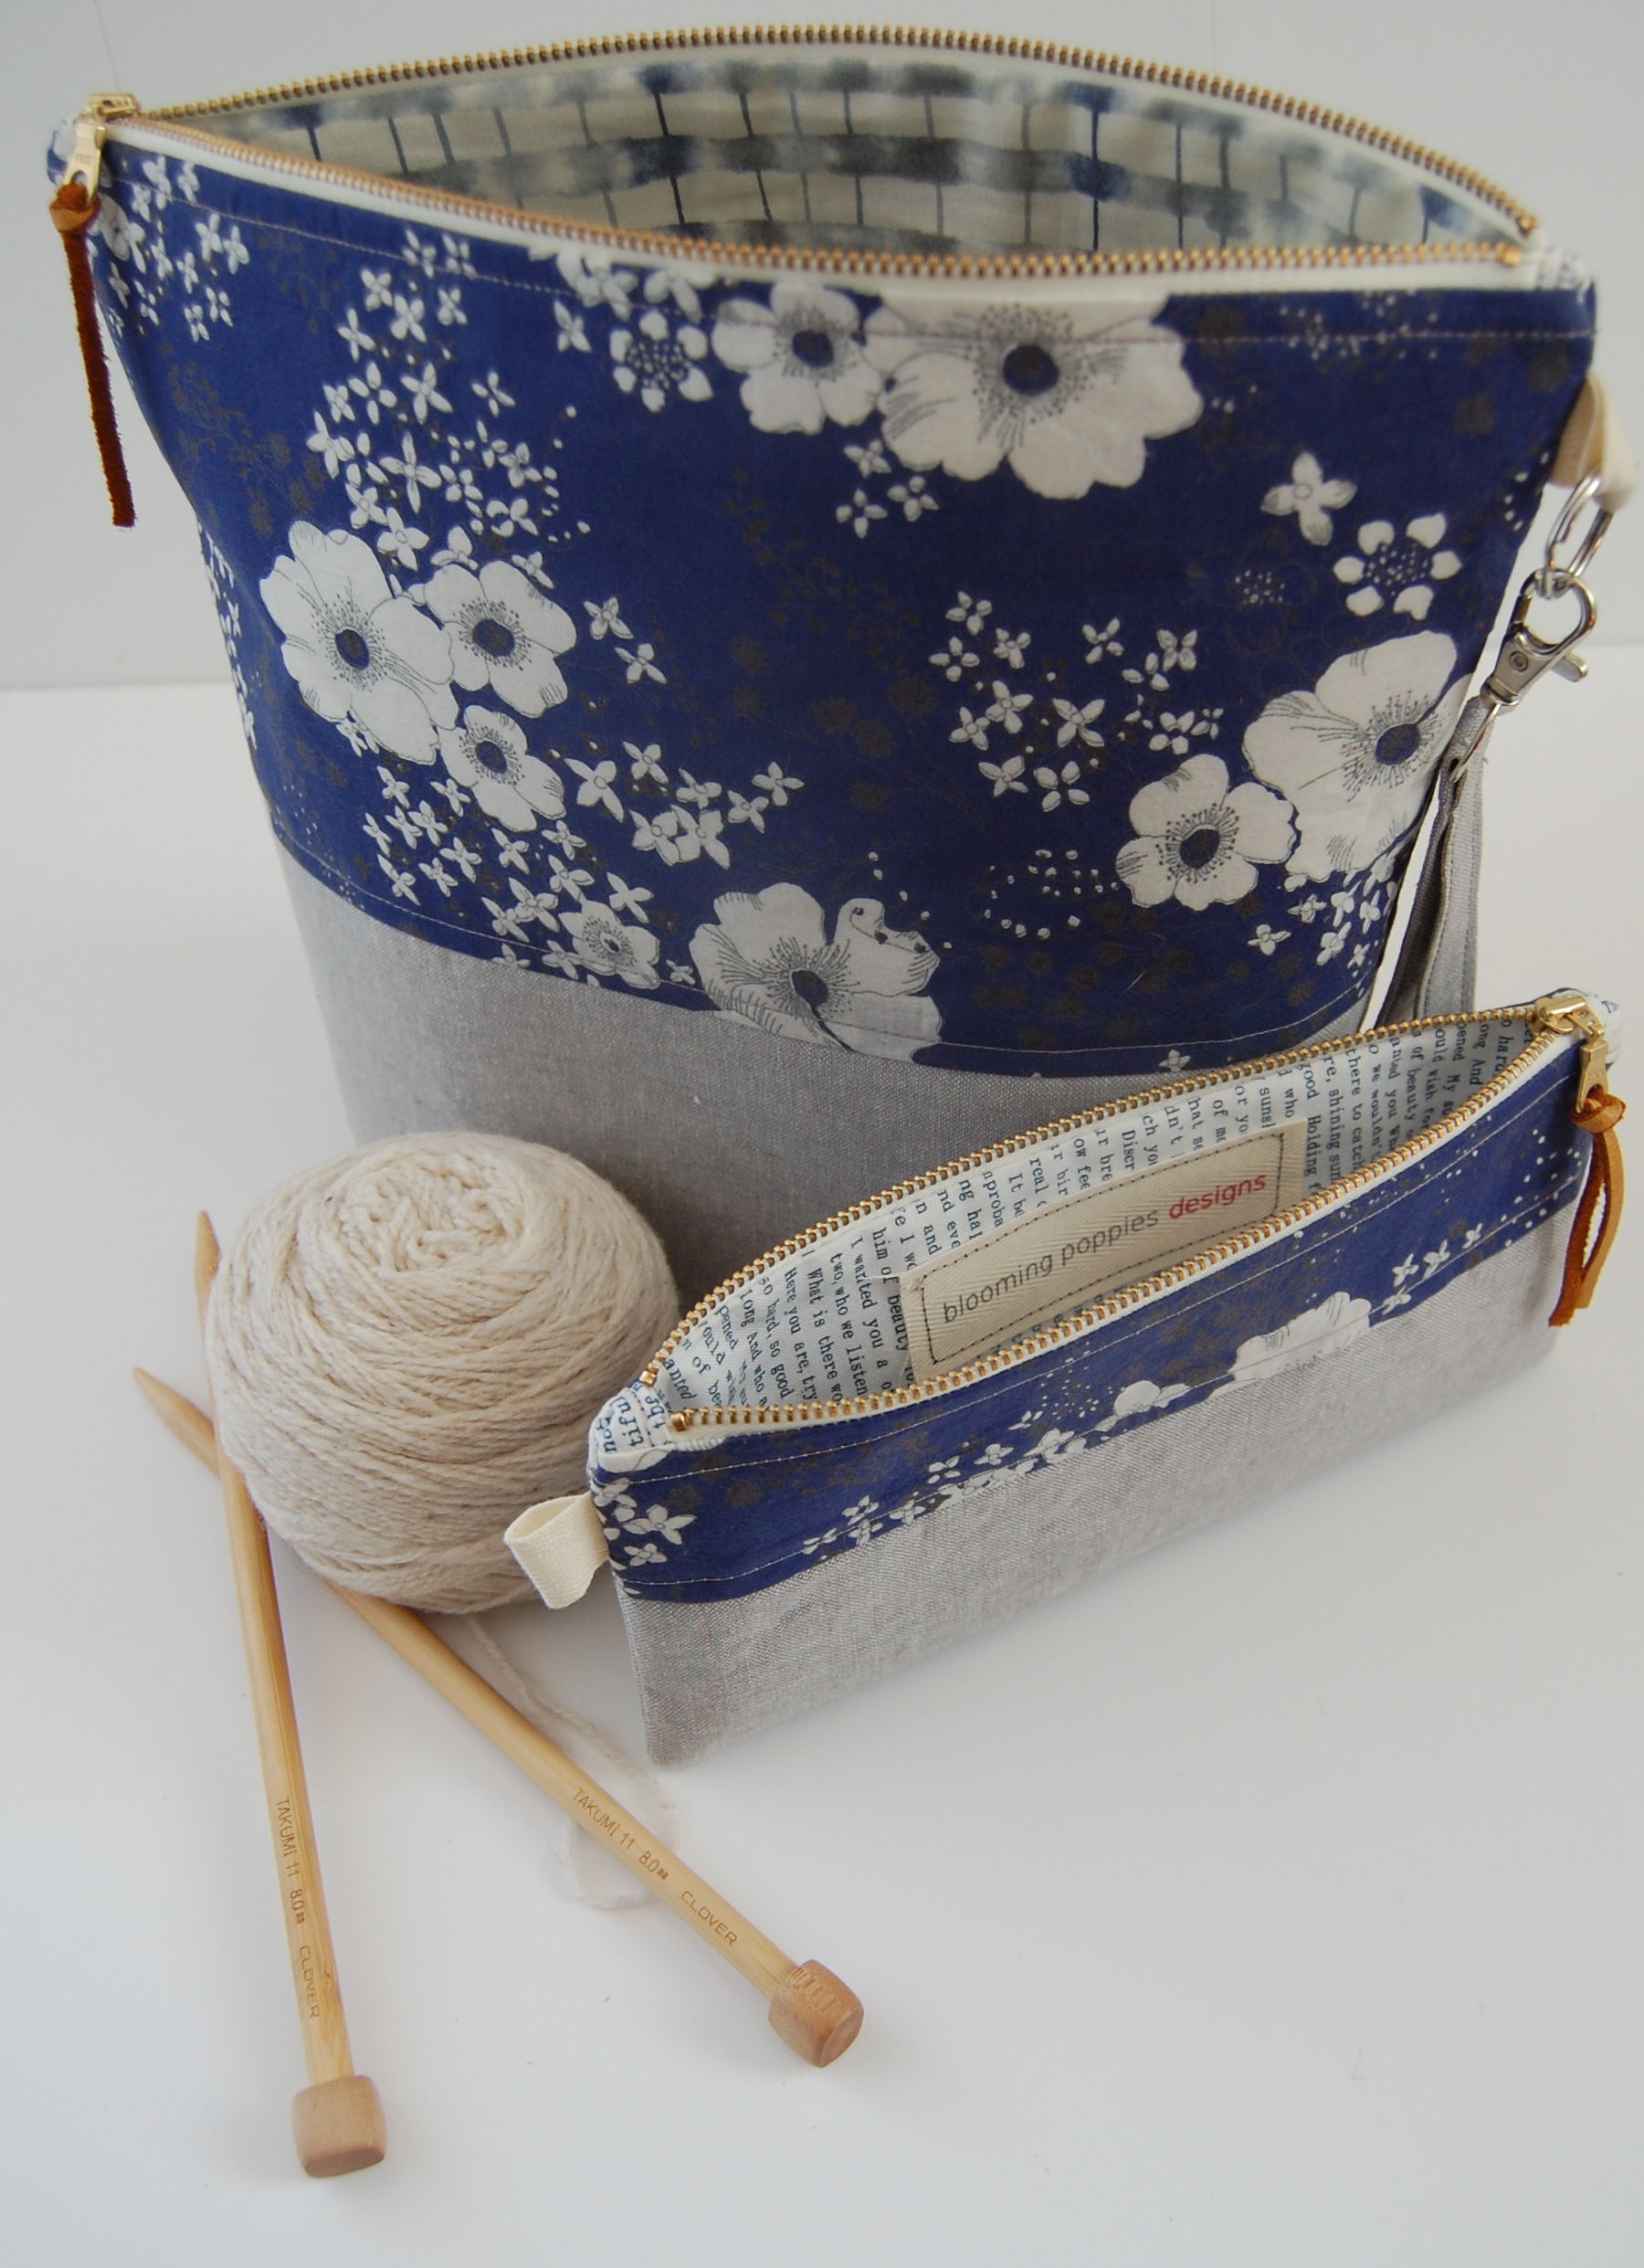 Zippered Knitting Bag : Introducing my new project stash bags… blooming poppies